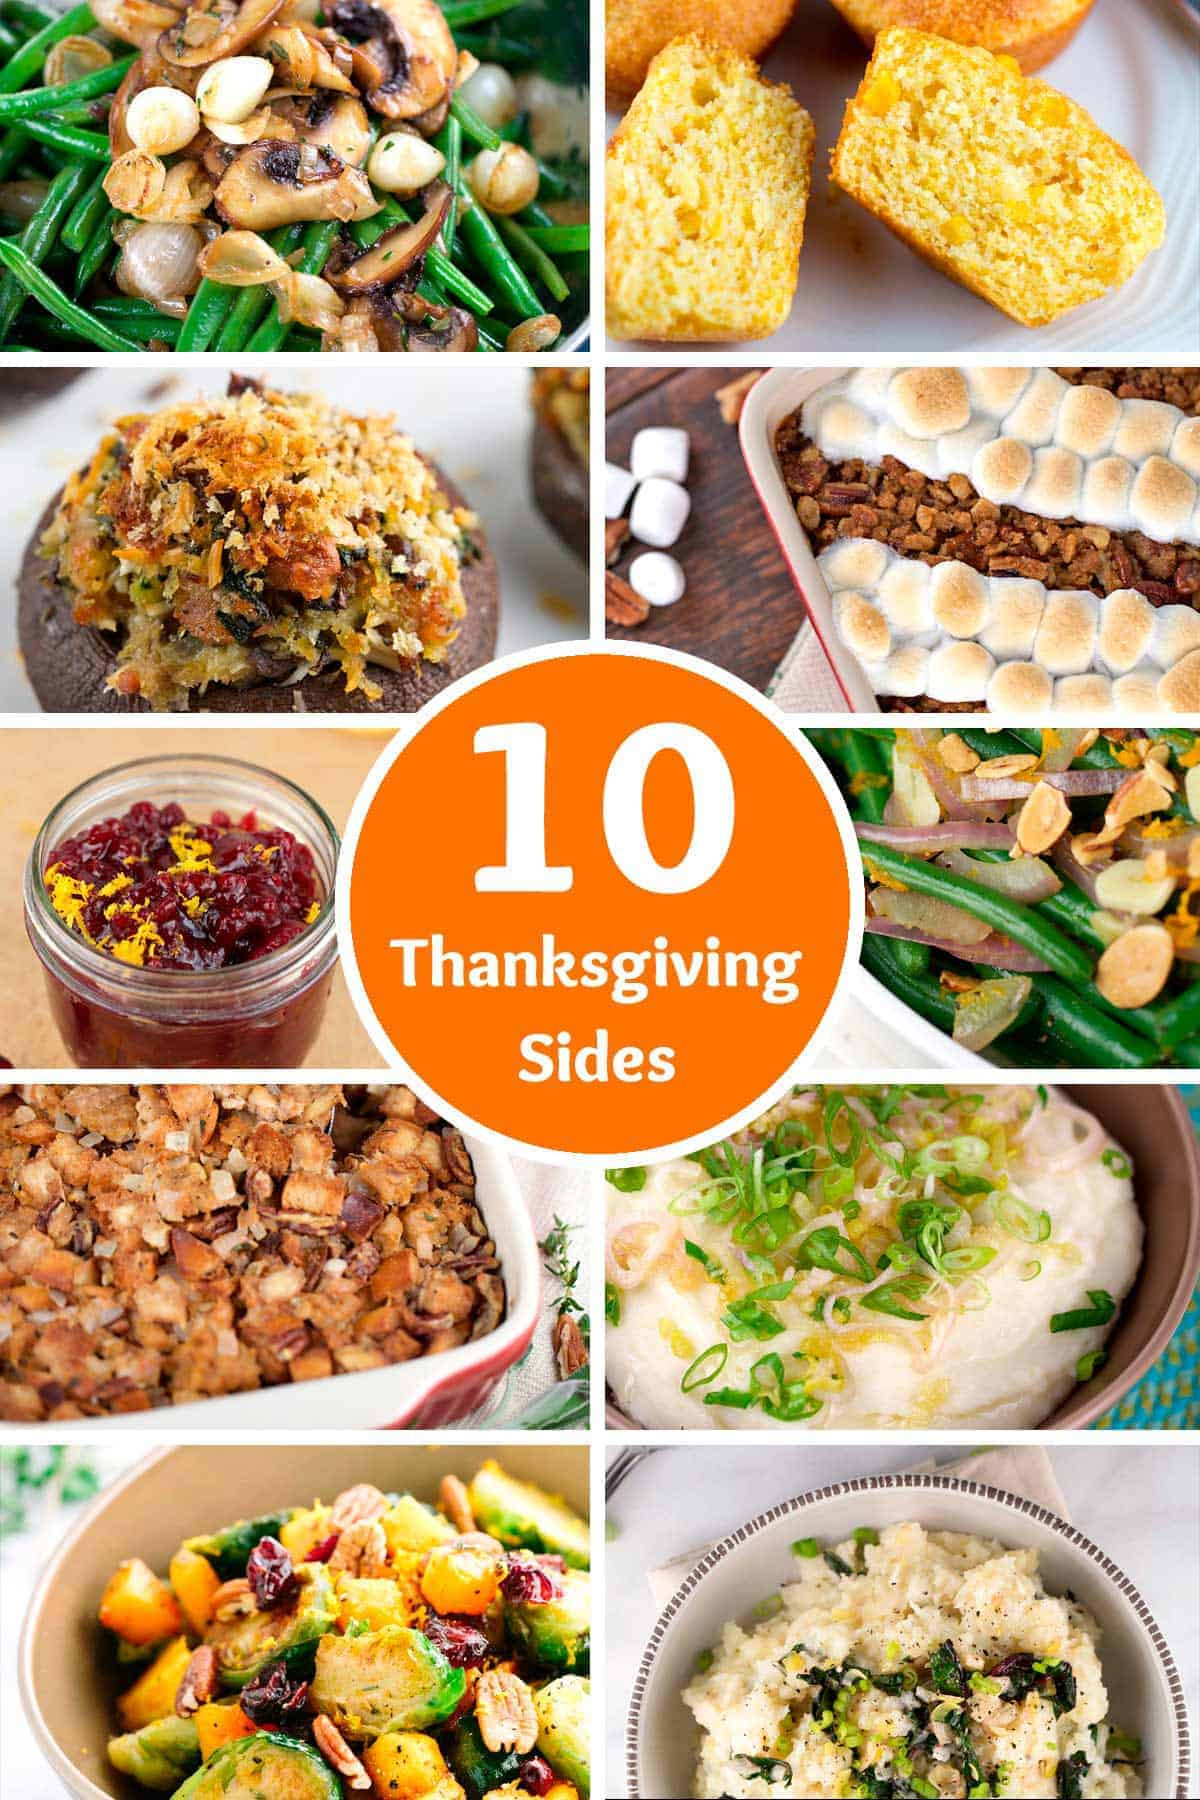 Easy Side Dishes For Thanksgiving  10 Easy to Make Thanksgiving Side Dishes Jessica Gavin